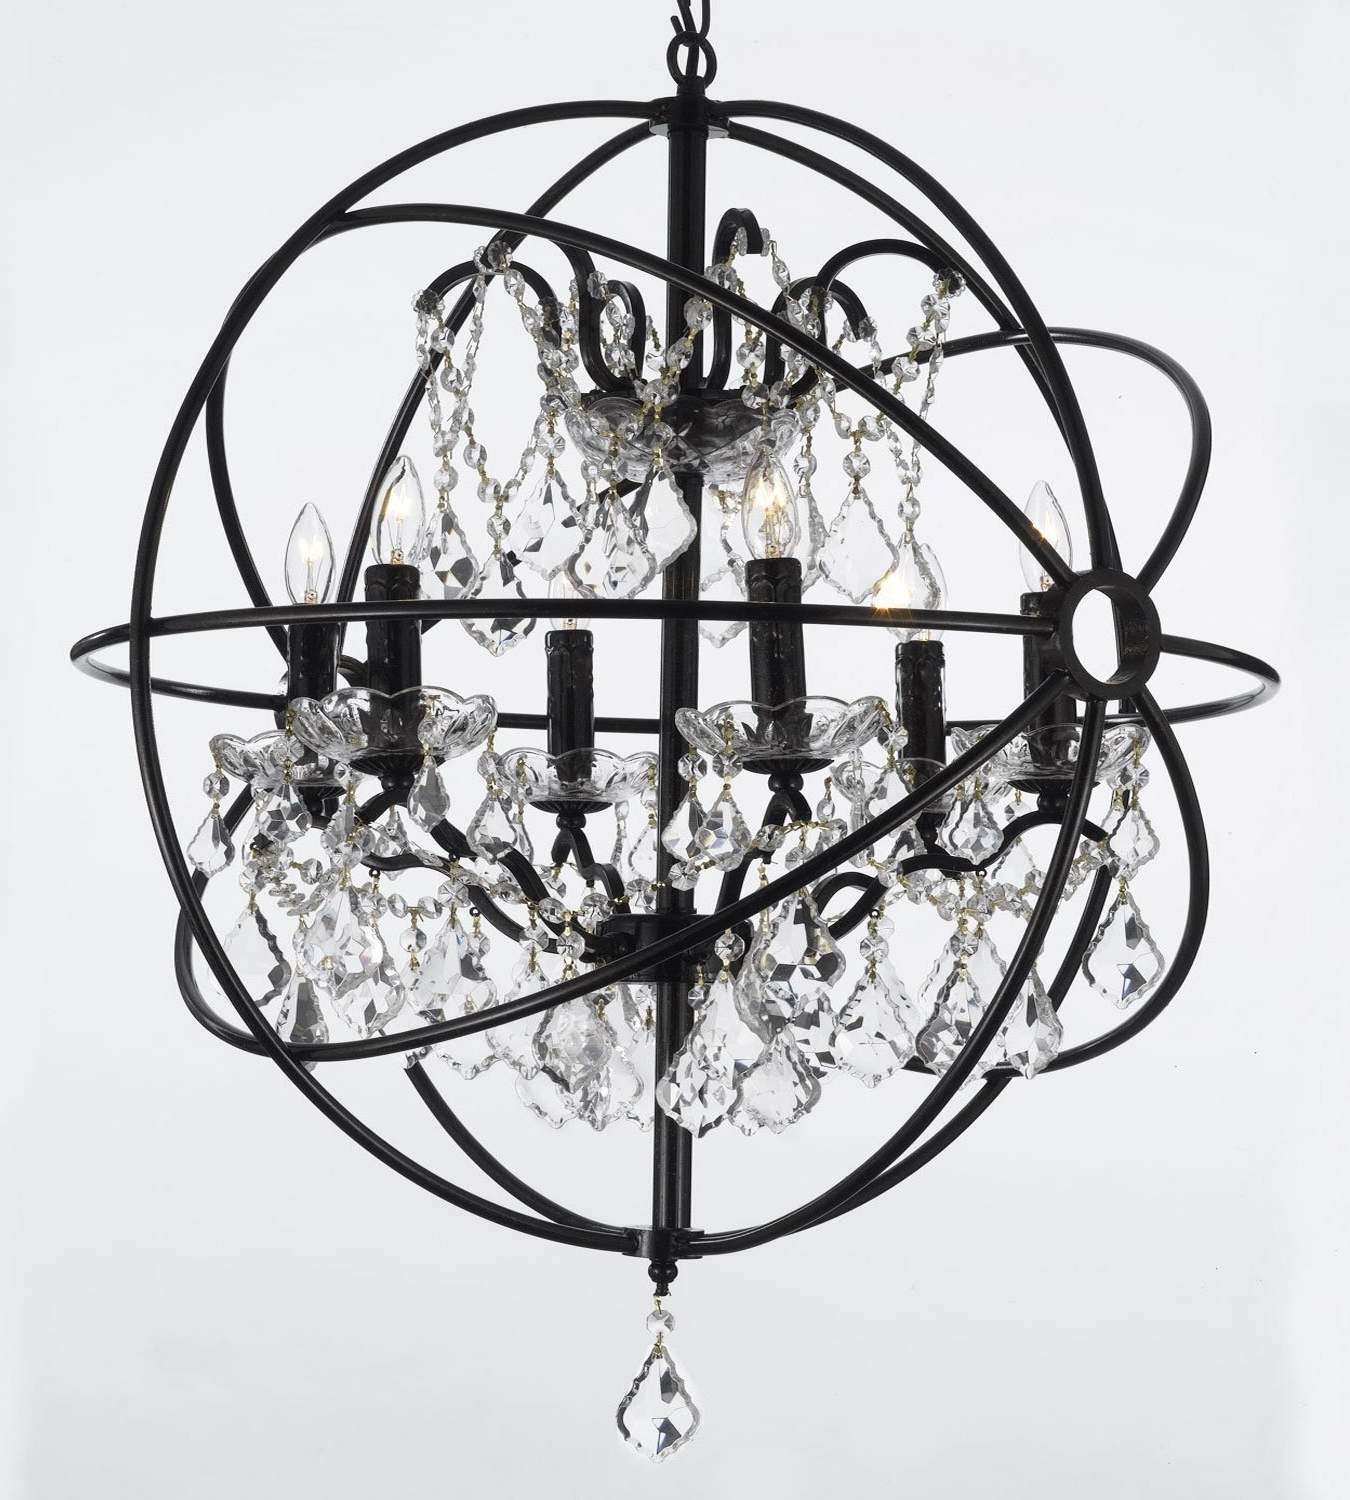 Best And Newest Foucault's Orb Wrought Iron Crystal Chandelier Lighting Country Pertaining To Wrought Iron Chandelier (View 14 of 15)